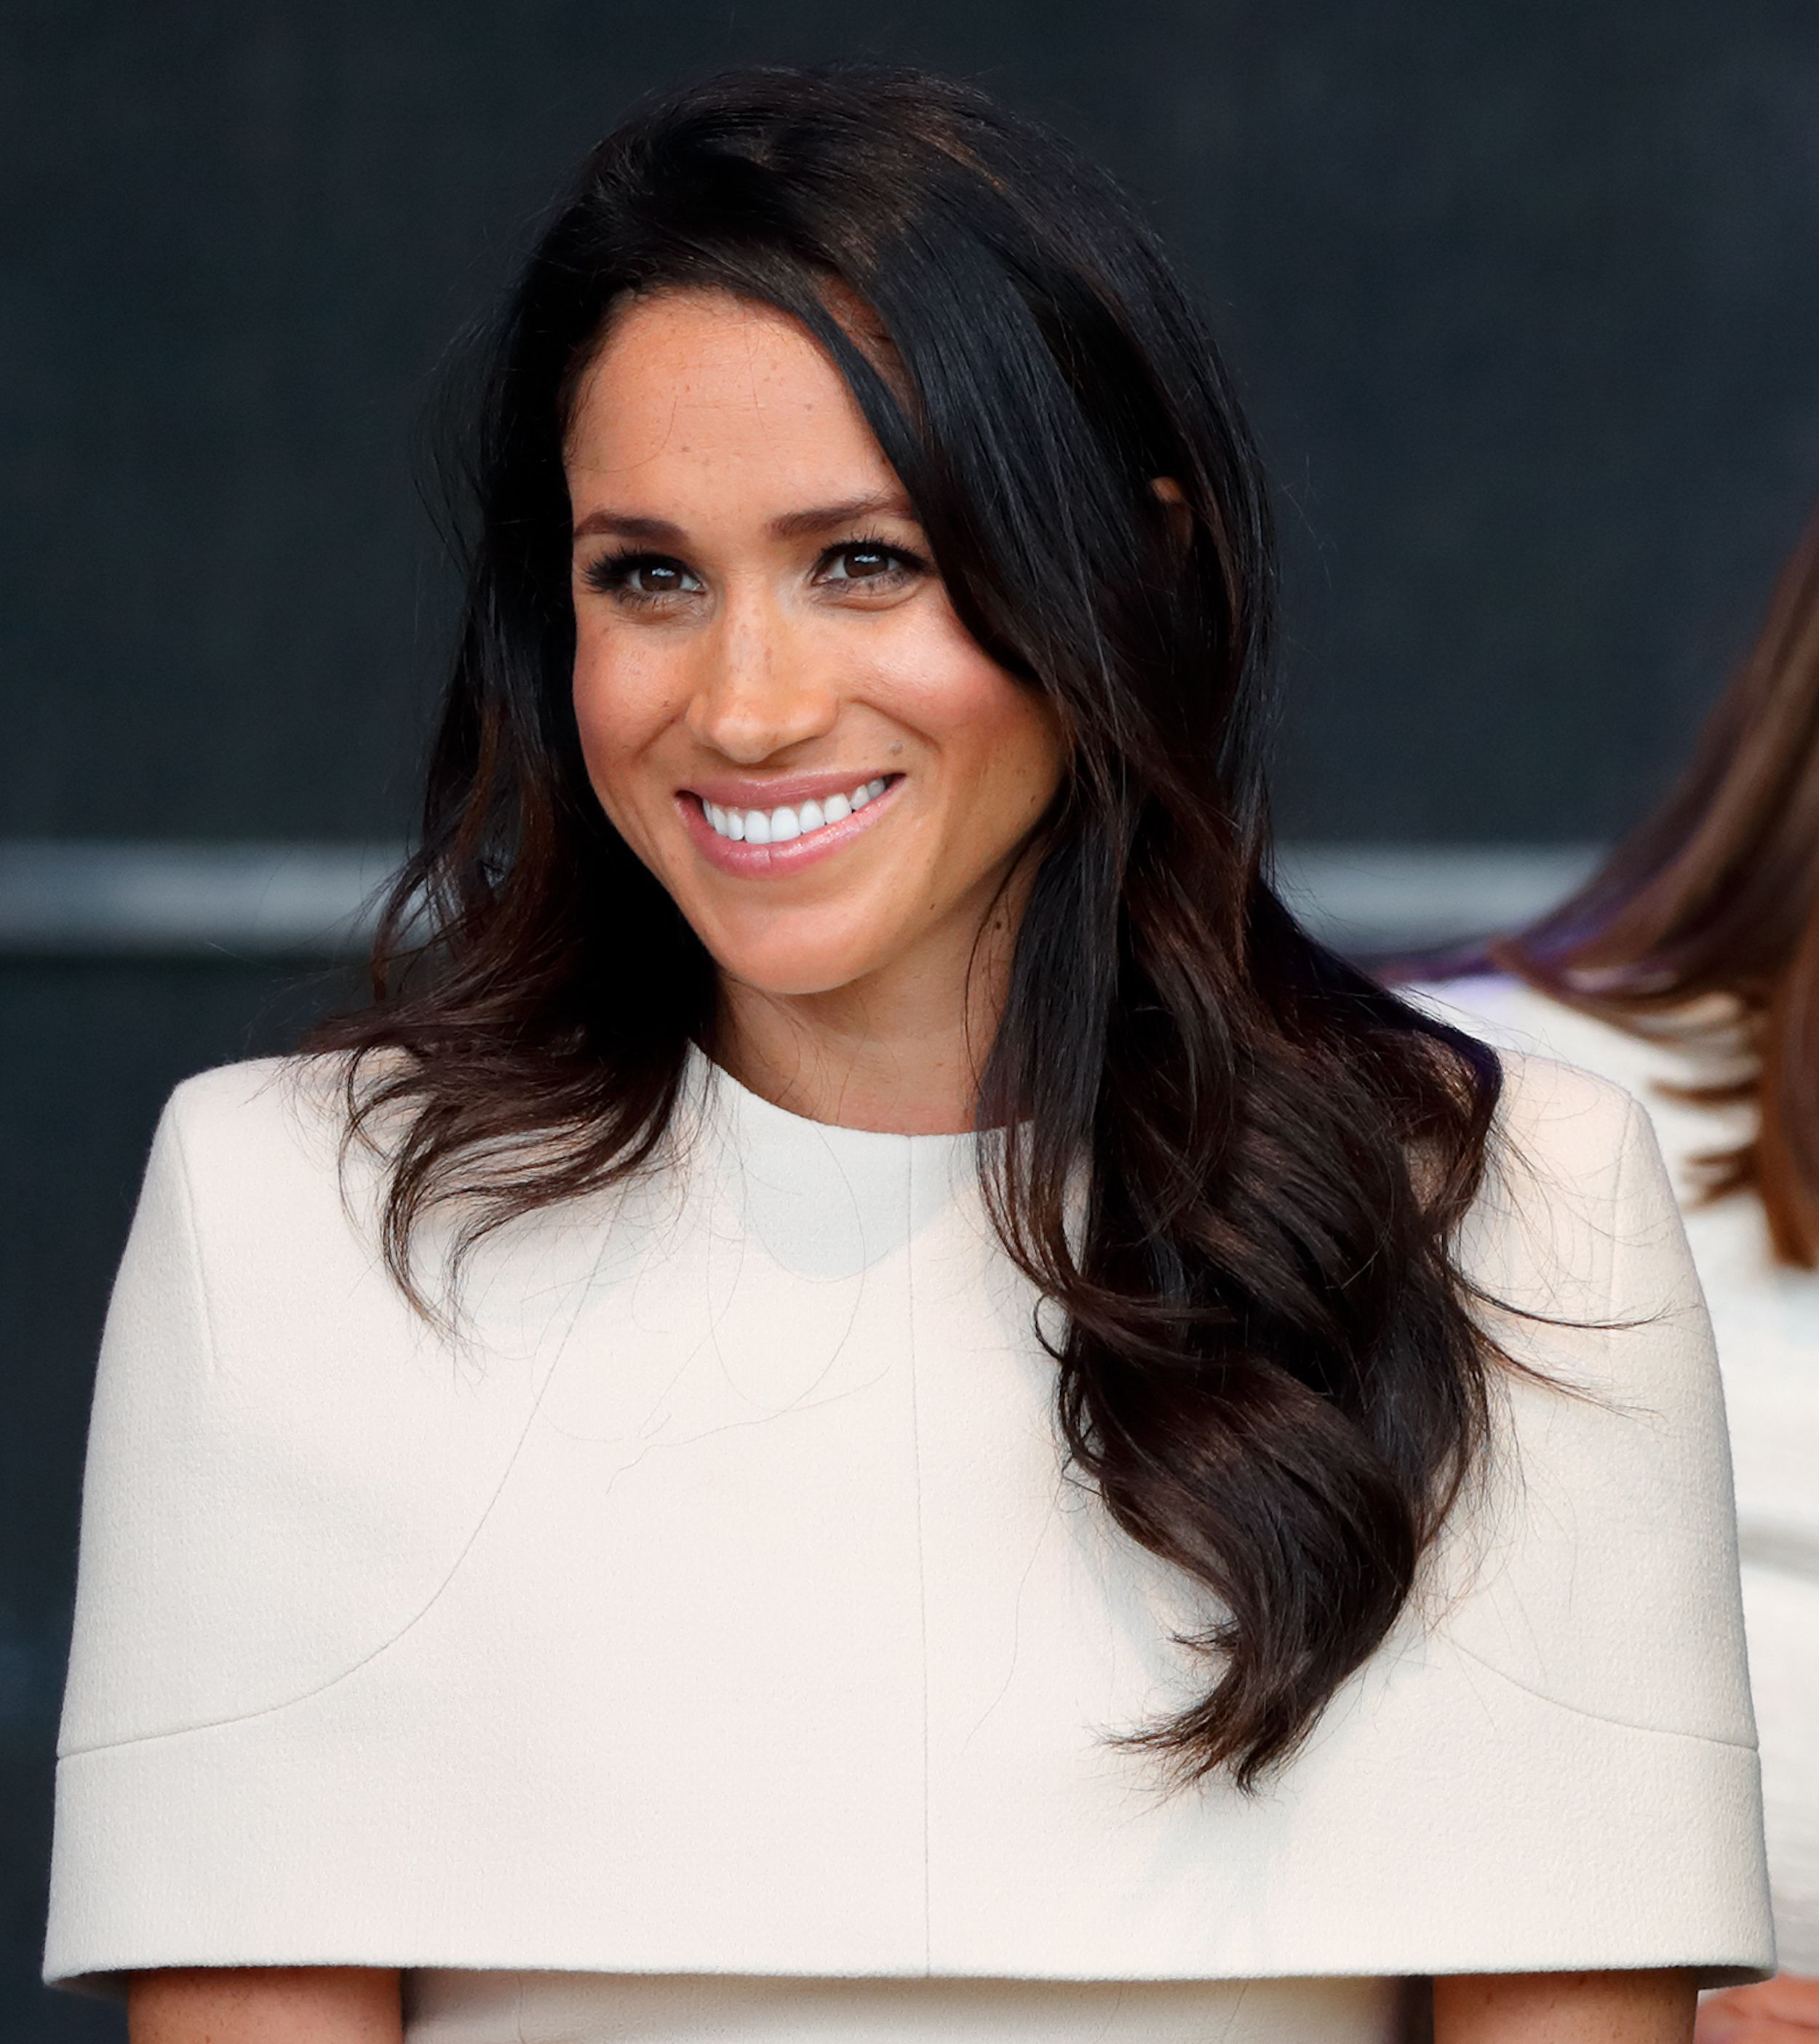 A new behind-the-scenes photo of Meghan Markle has been shared for her birthday